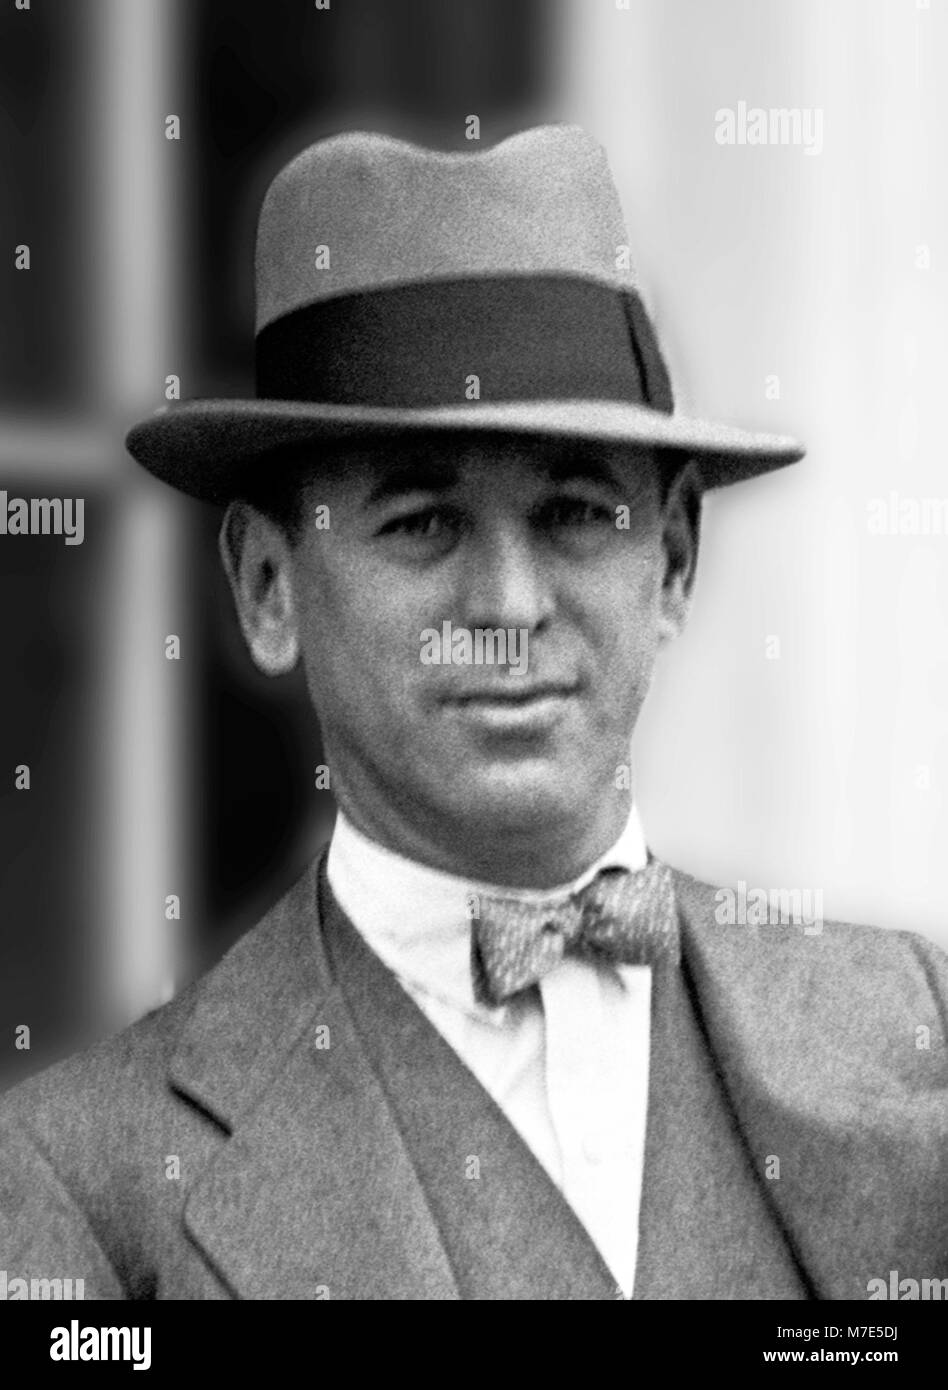 Rube Goldberg (1883-1970), portrait of the American cartoonist, sculptor, author, engineer, and inventor. Photograph - Stock Image